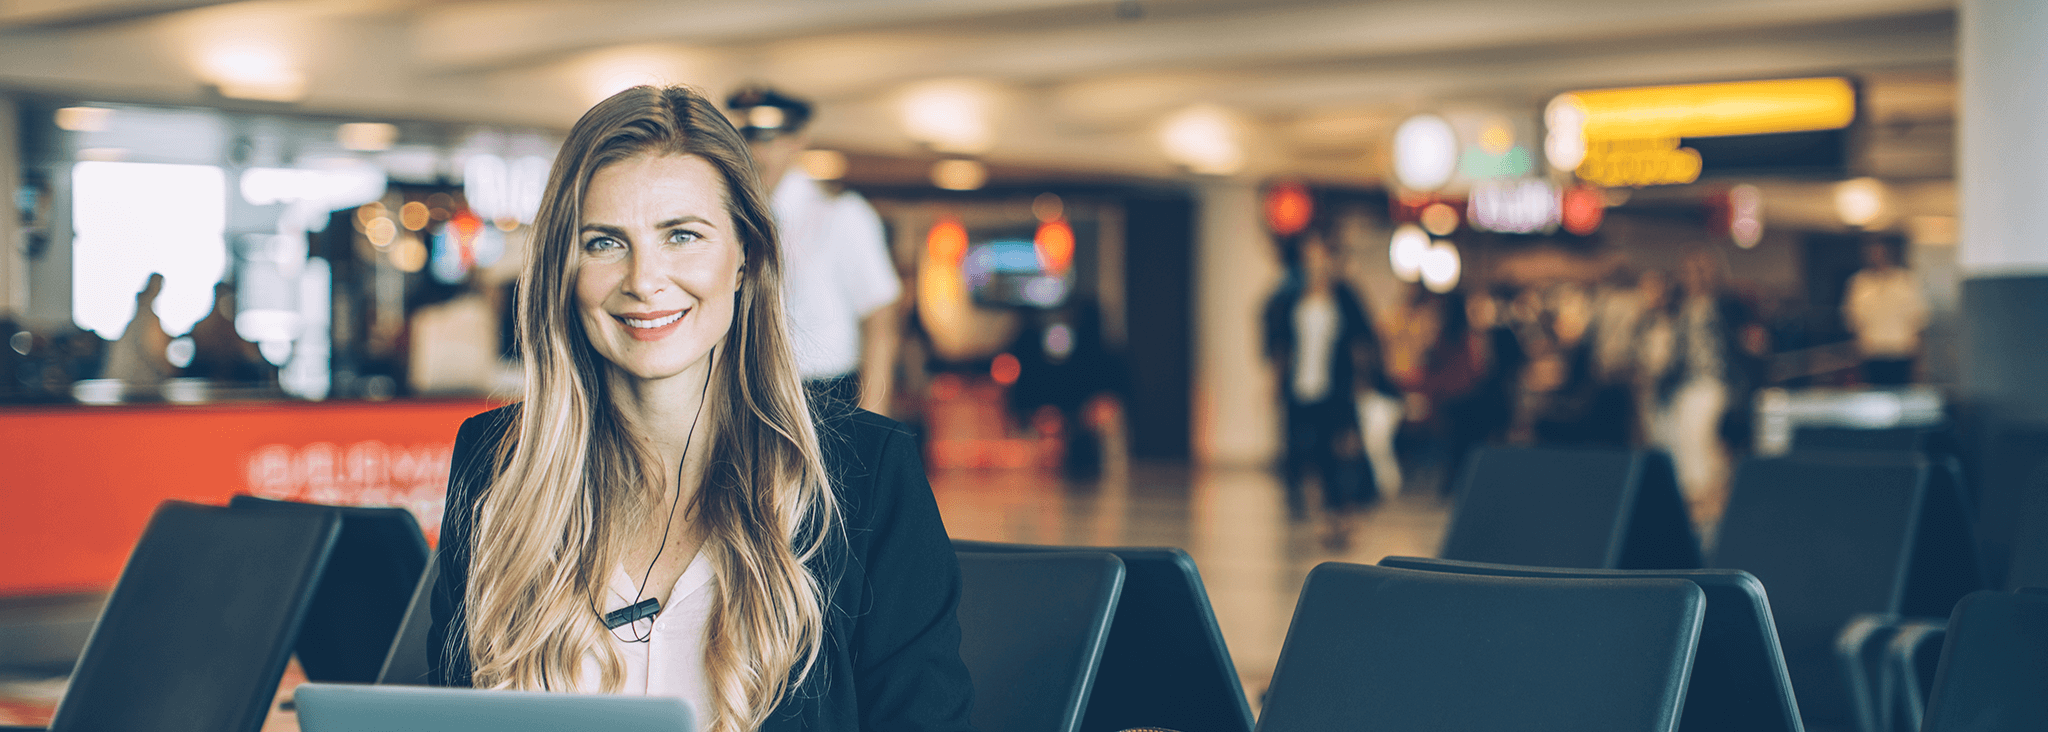 Services to the travel industry - Woman in airport